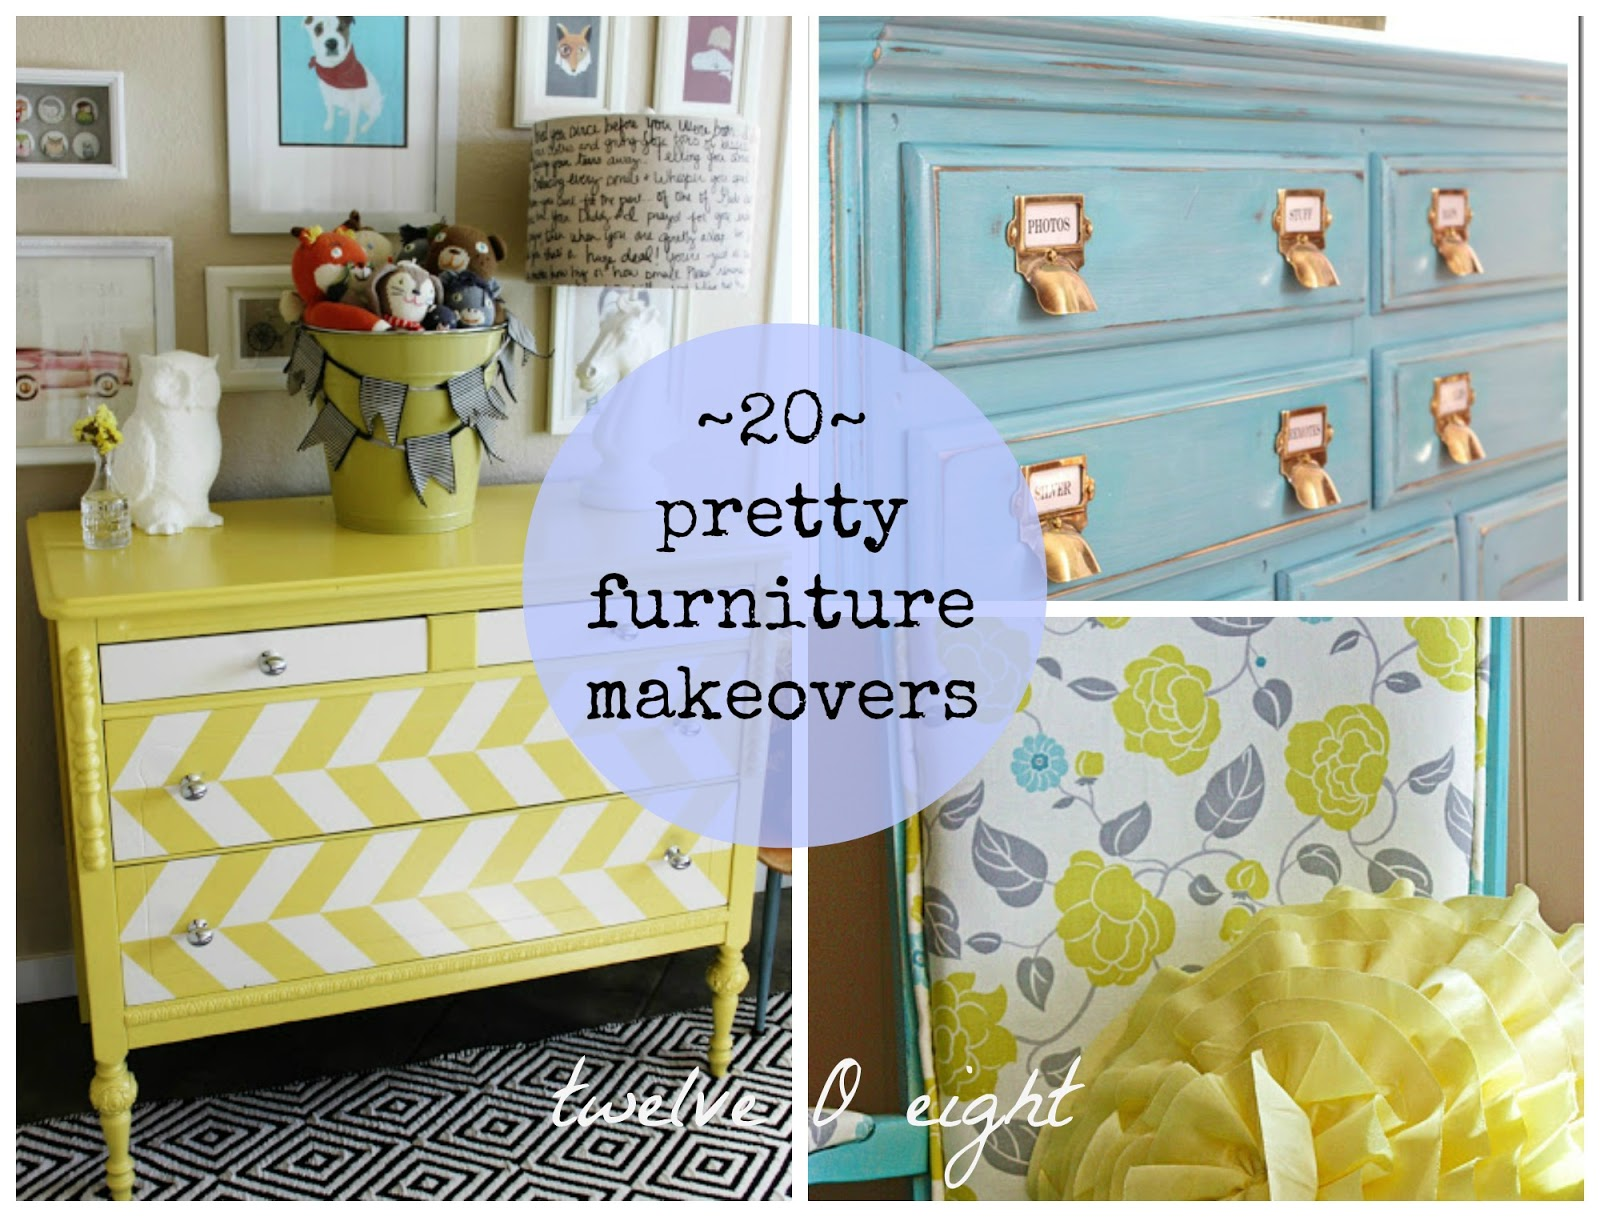 20 pretty furniture makeovers